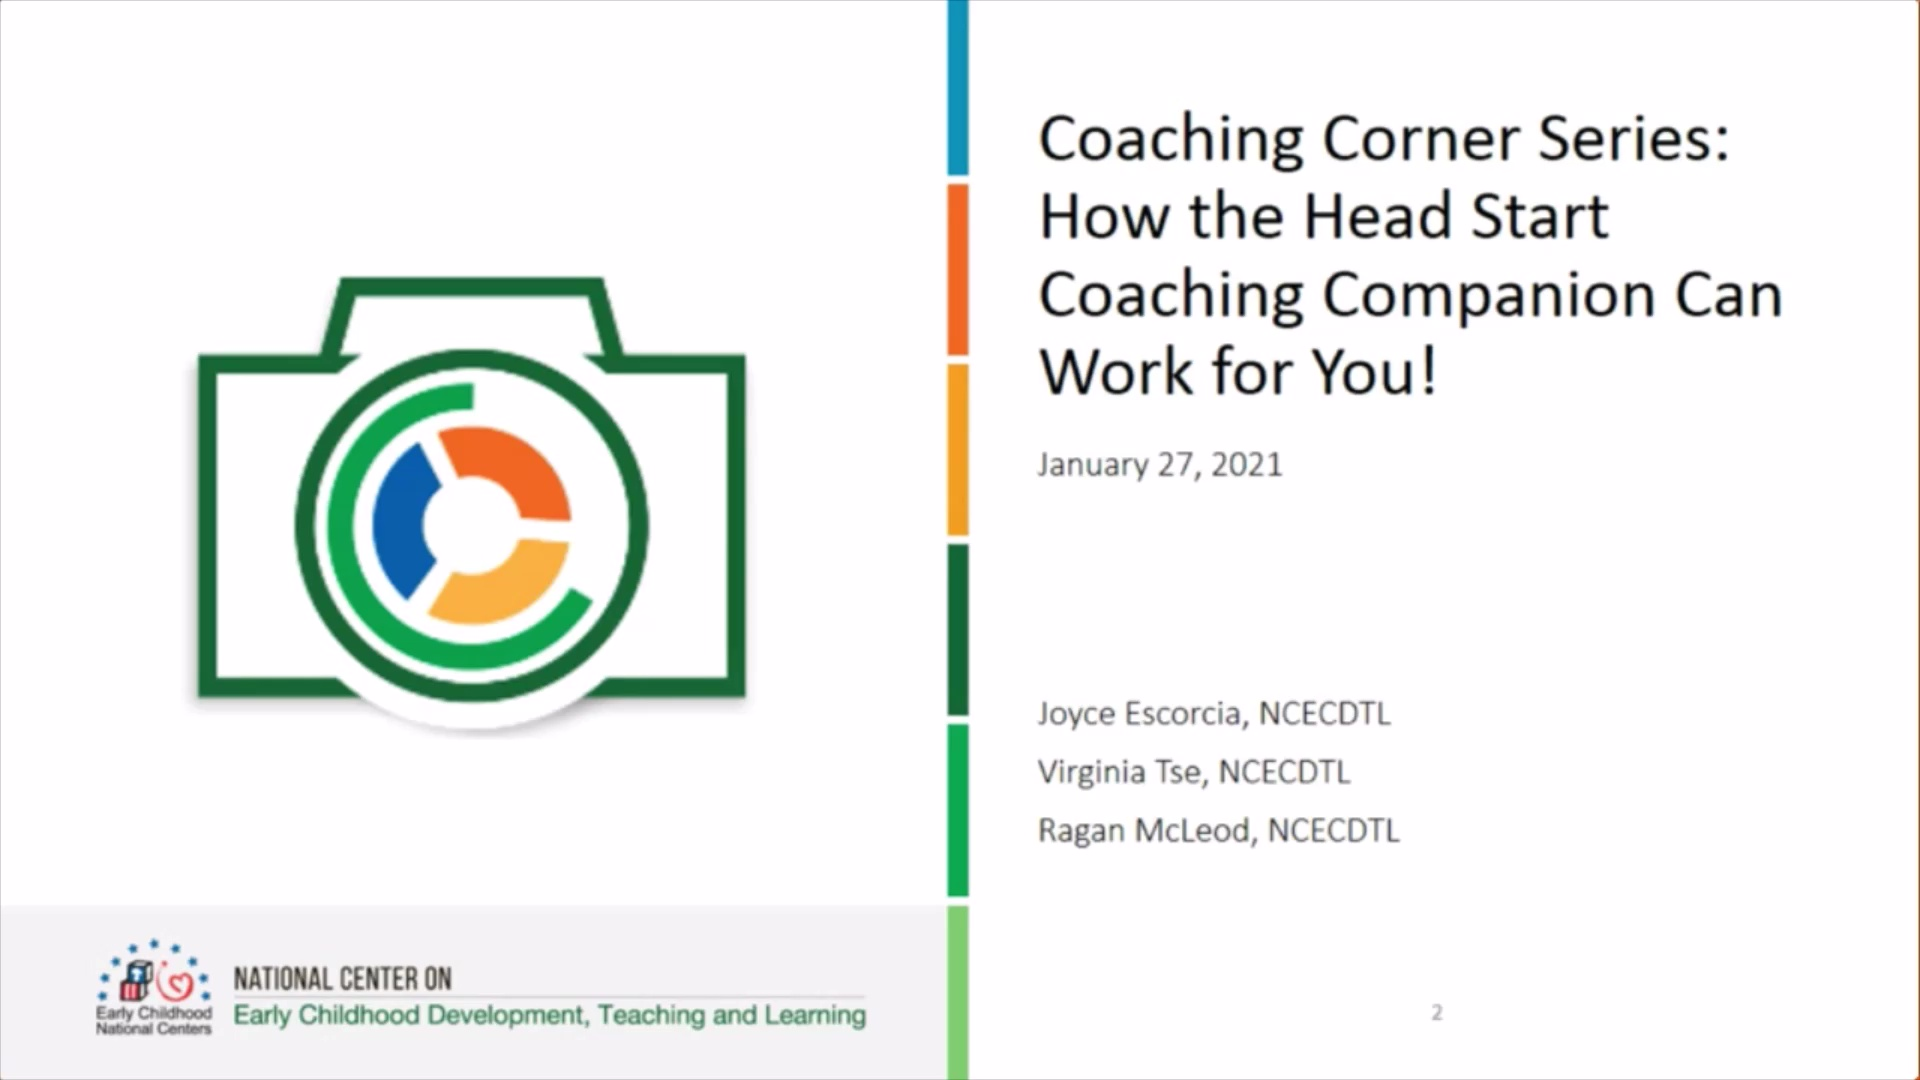 How the Head Start Coaching Companion Can Work for You